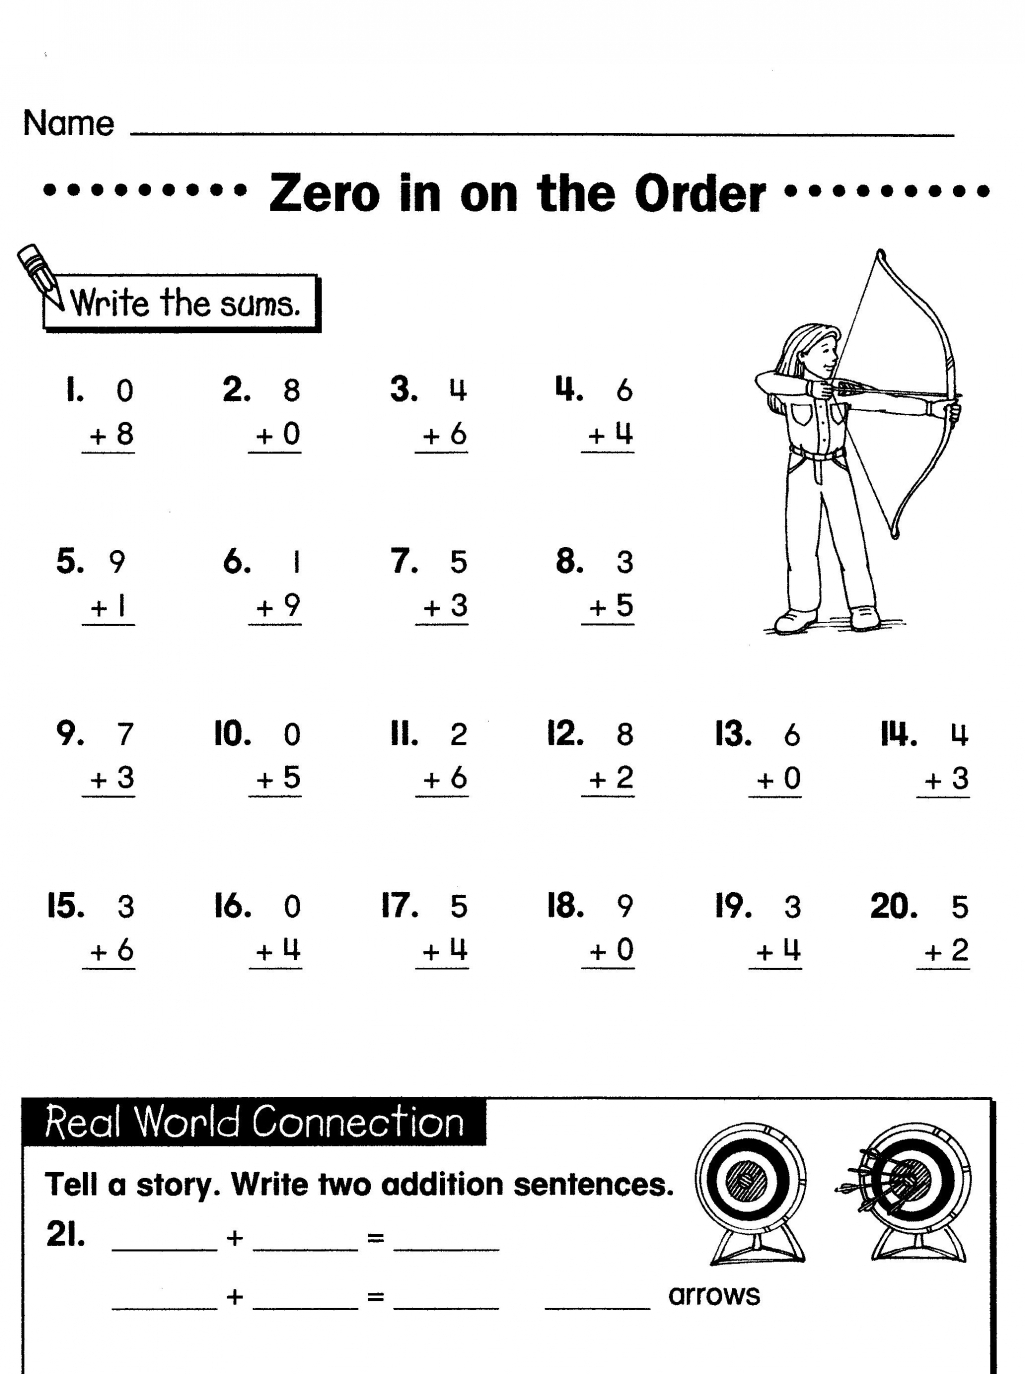 Printables 5th Grade Math Worksheets Pdf pdf math worksheets scalien free scalien